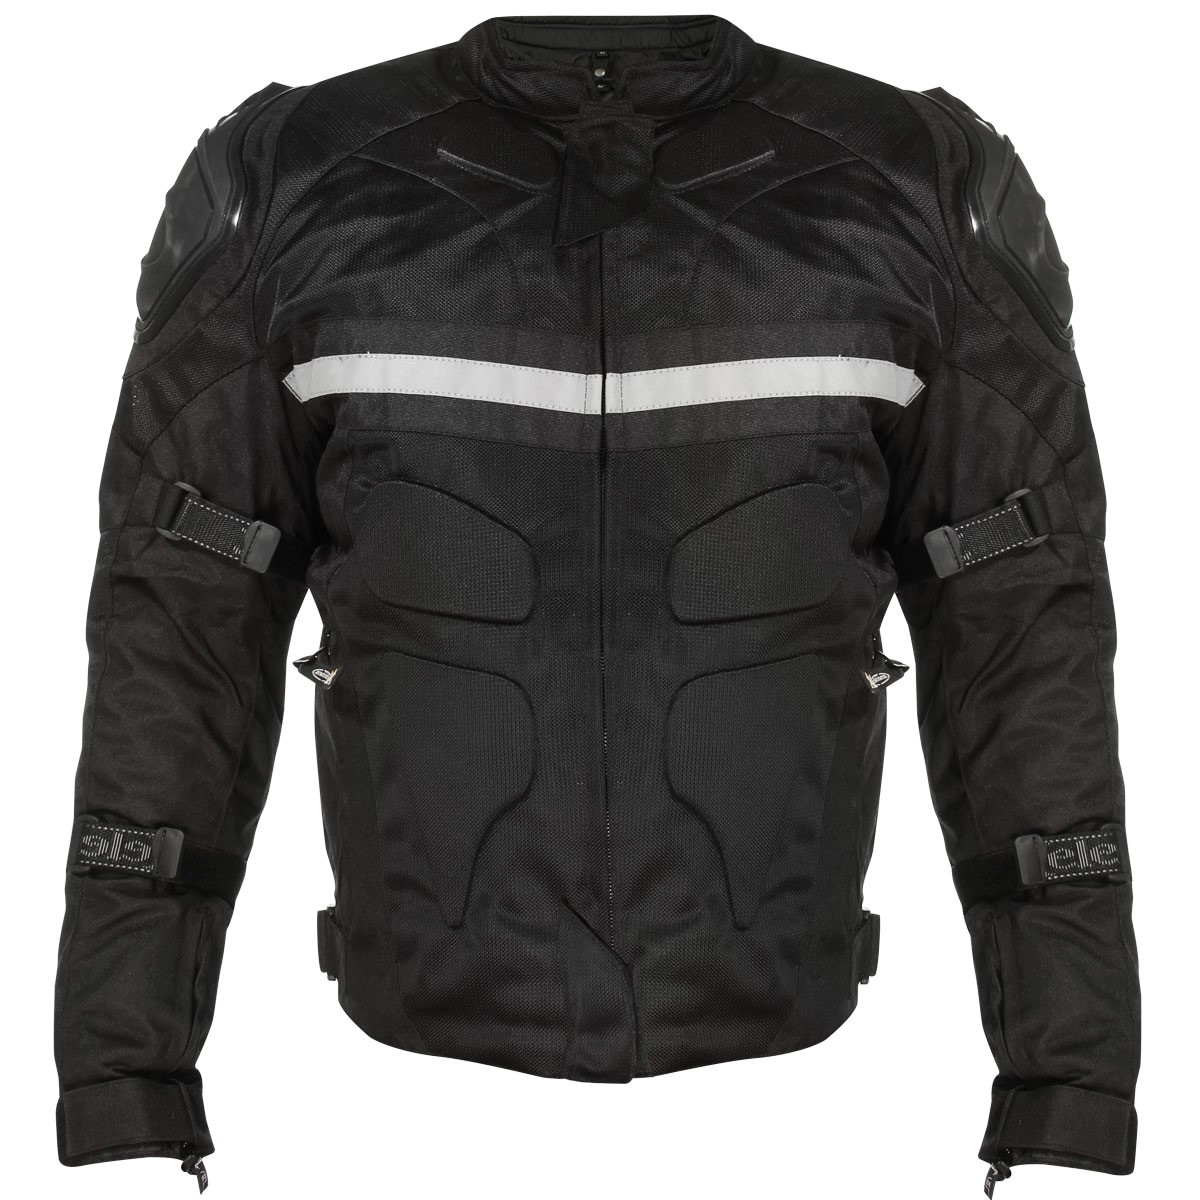 Xelement CF751 Mens Black Tri-Tex Motorcycle Jacket with Level-3 Armor